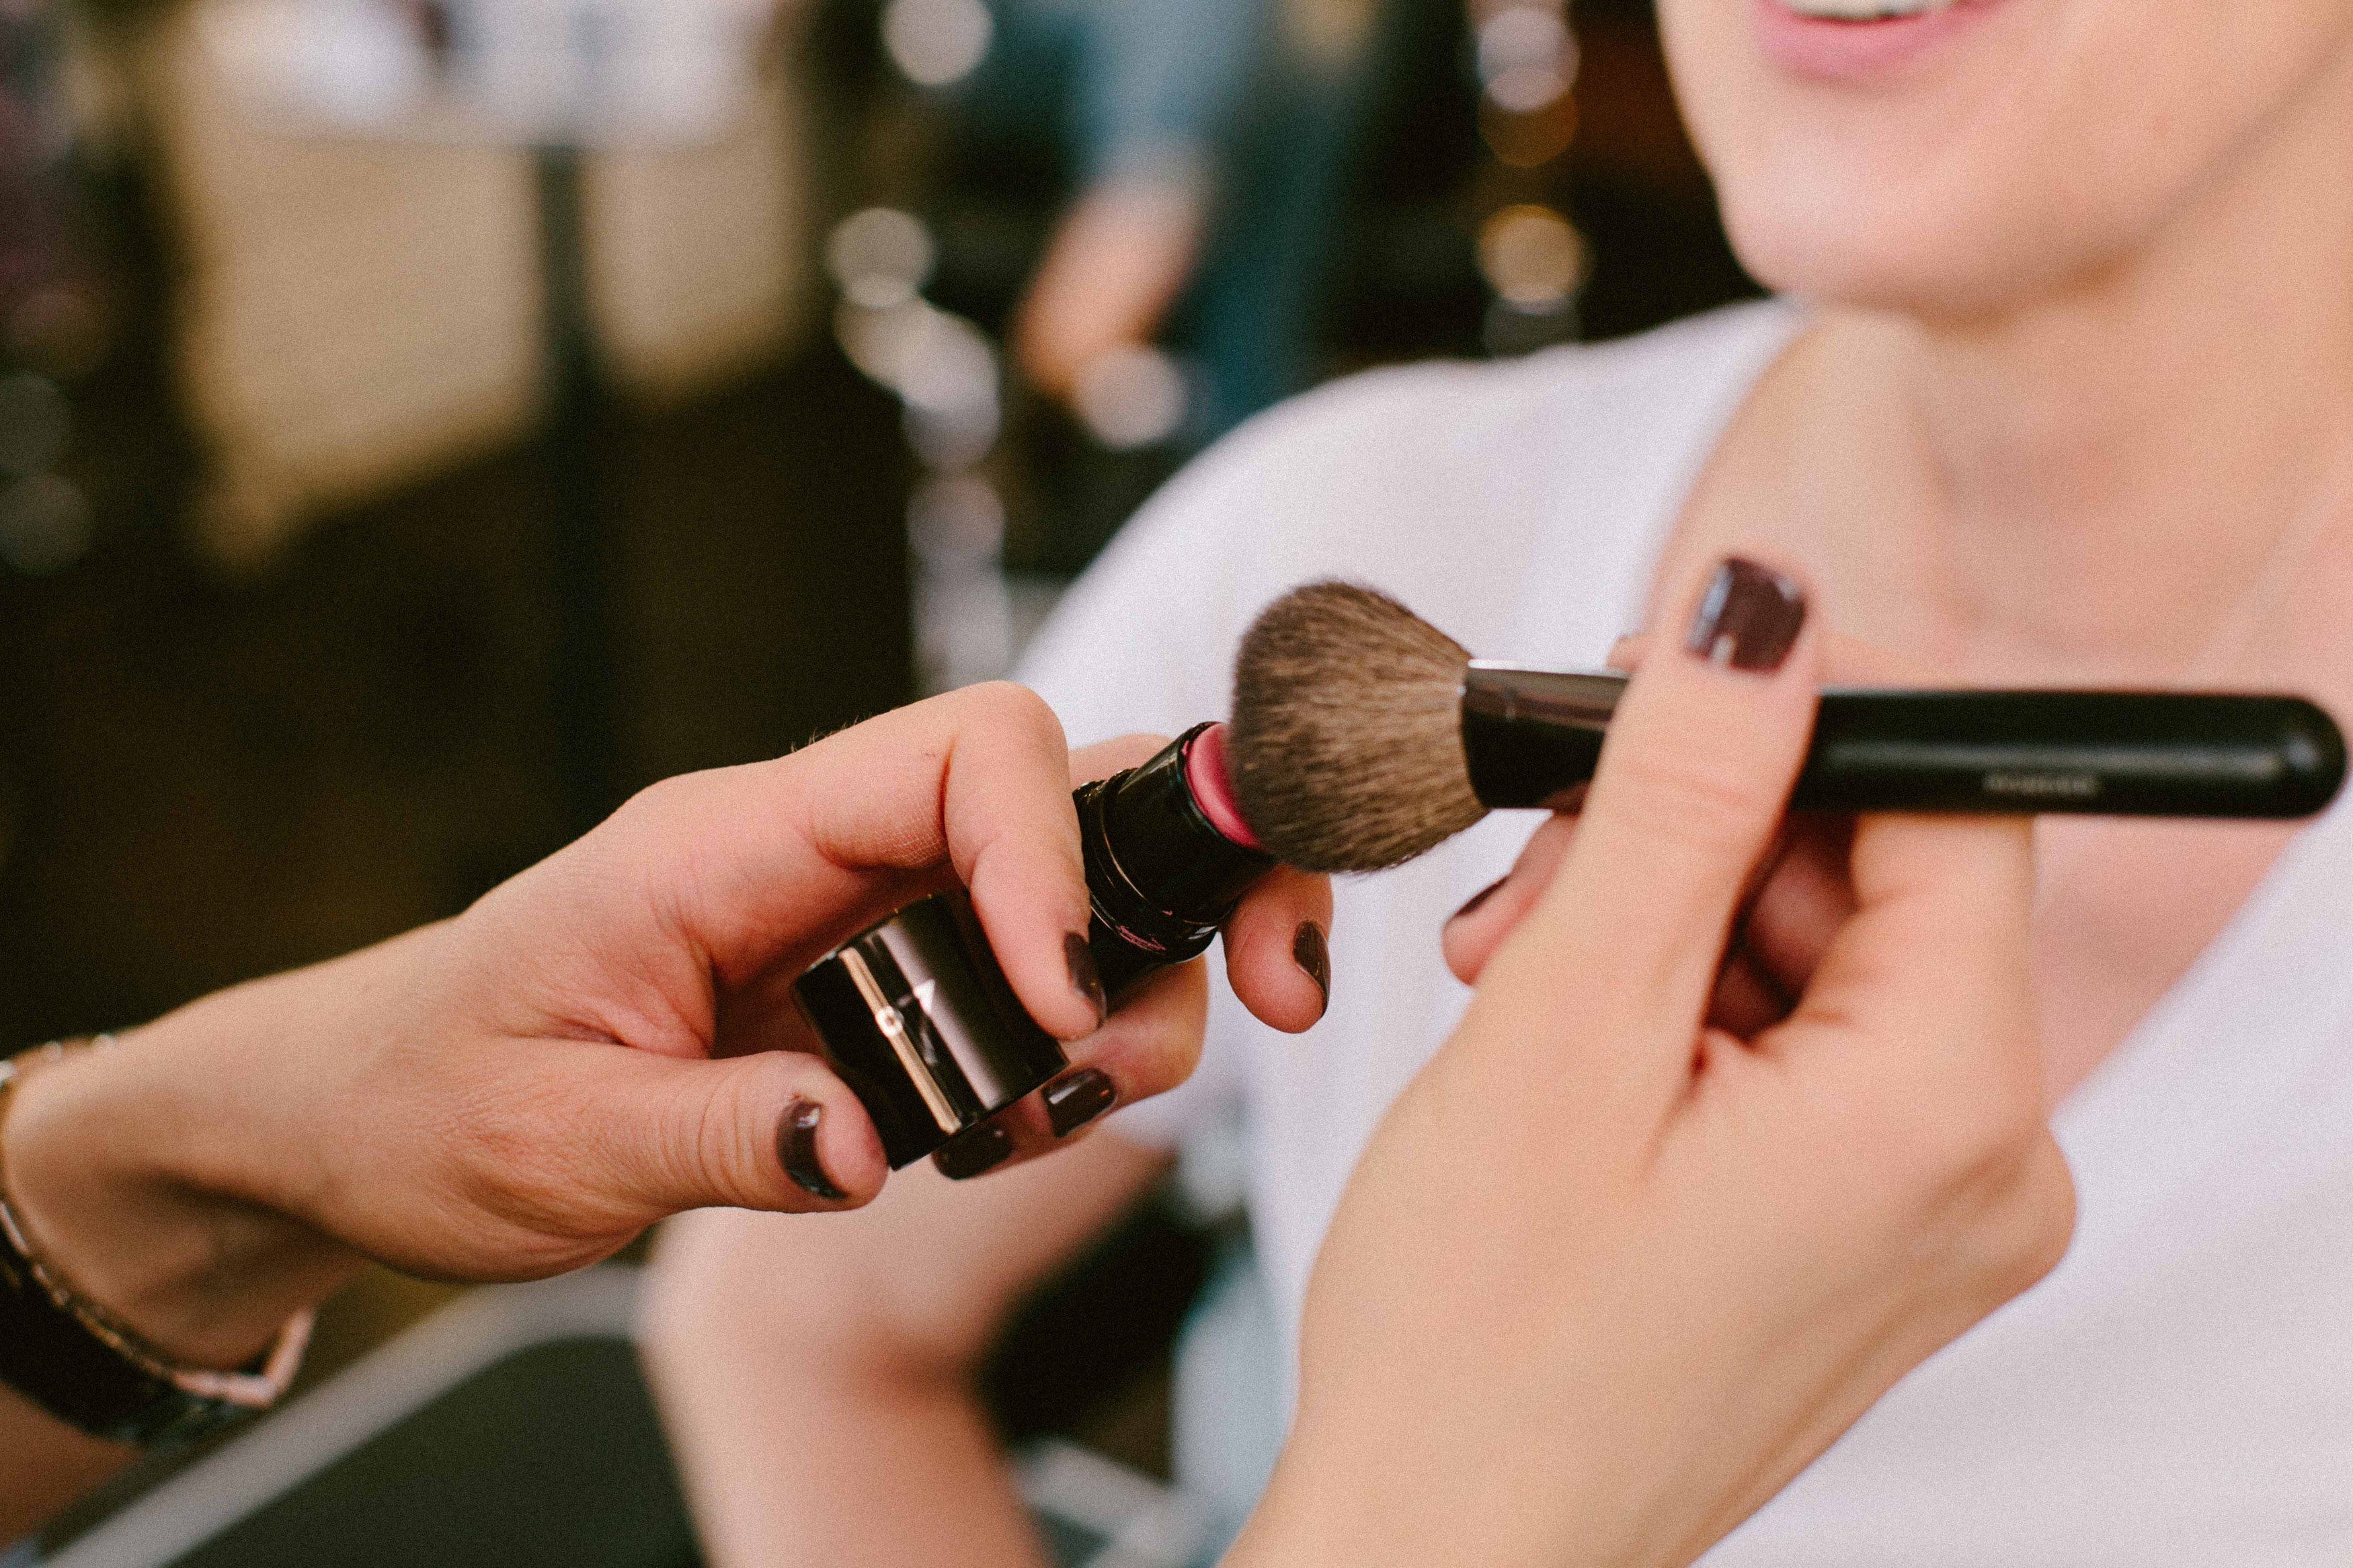 Crème blush got you stumped? Try applying it with a brush